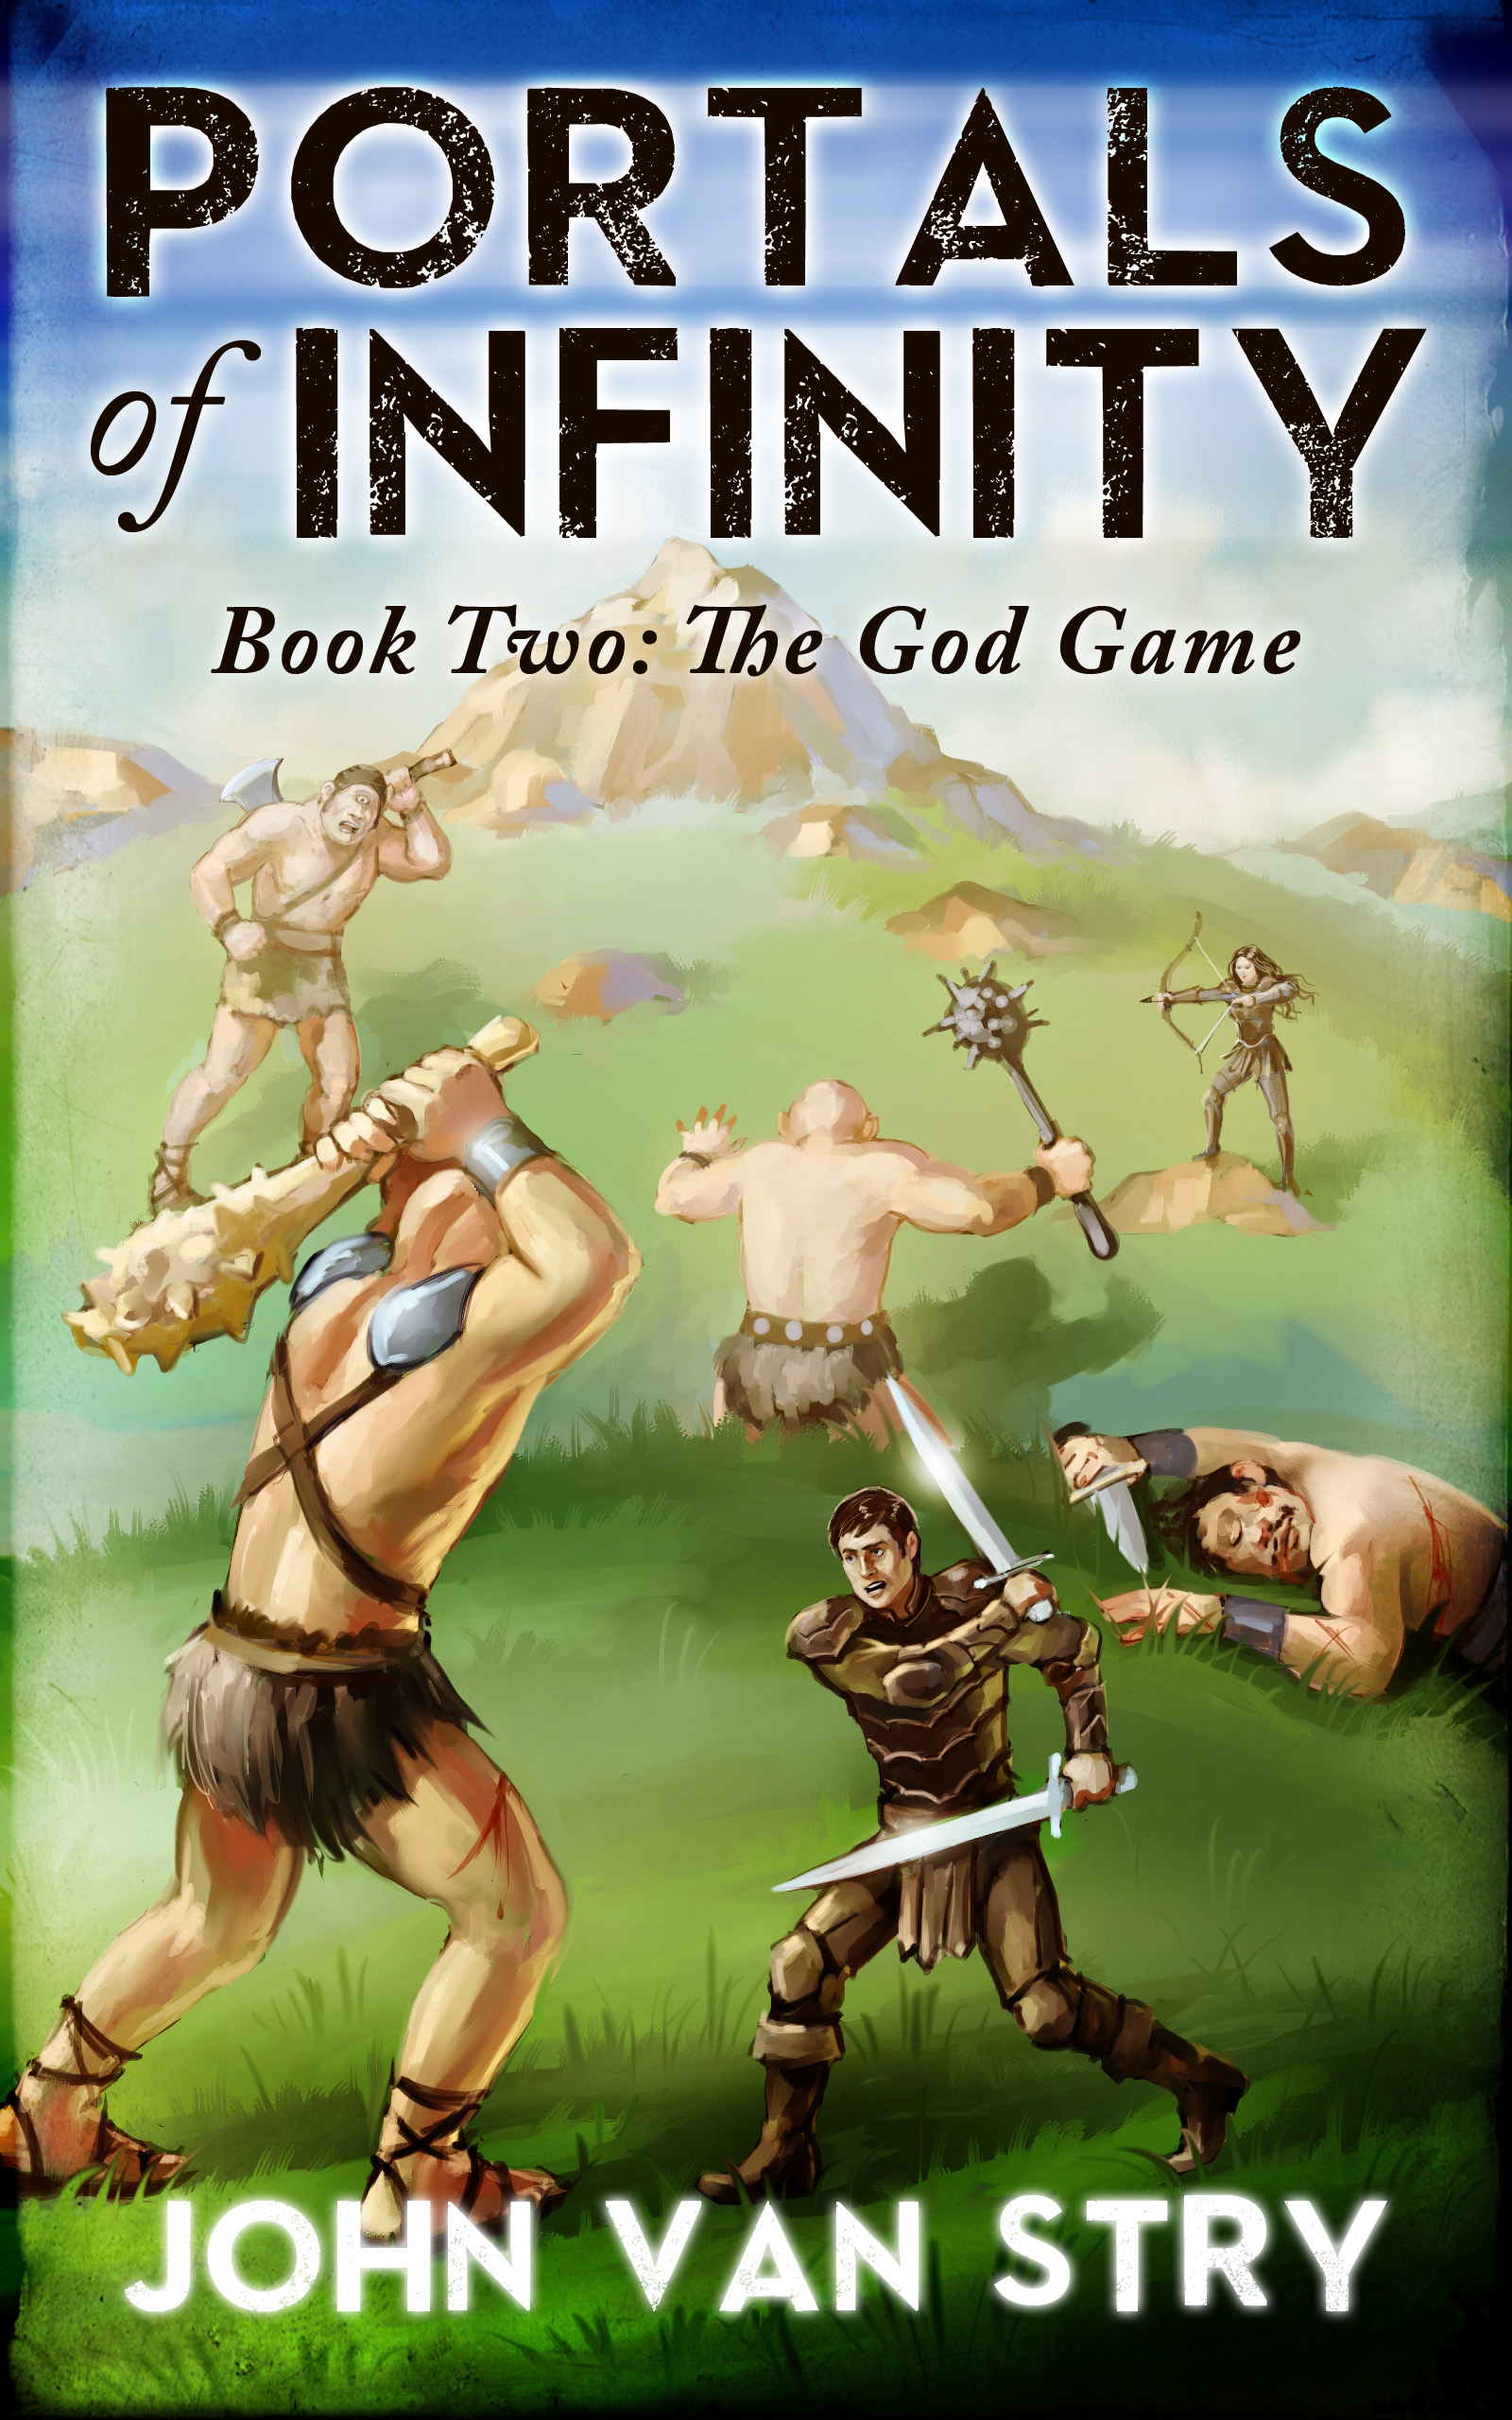 John Van Stry - Portals of Infinity, Book Two: The God Game